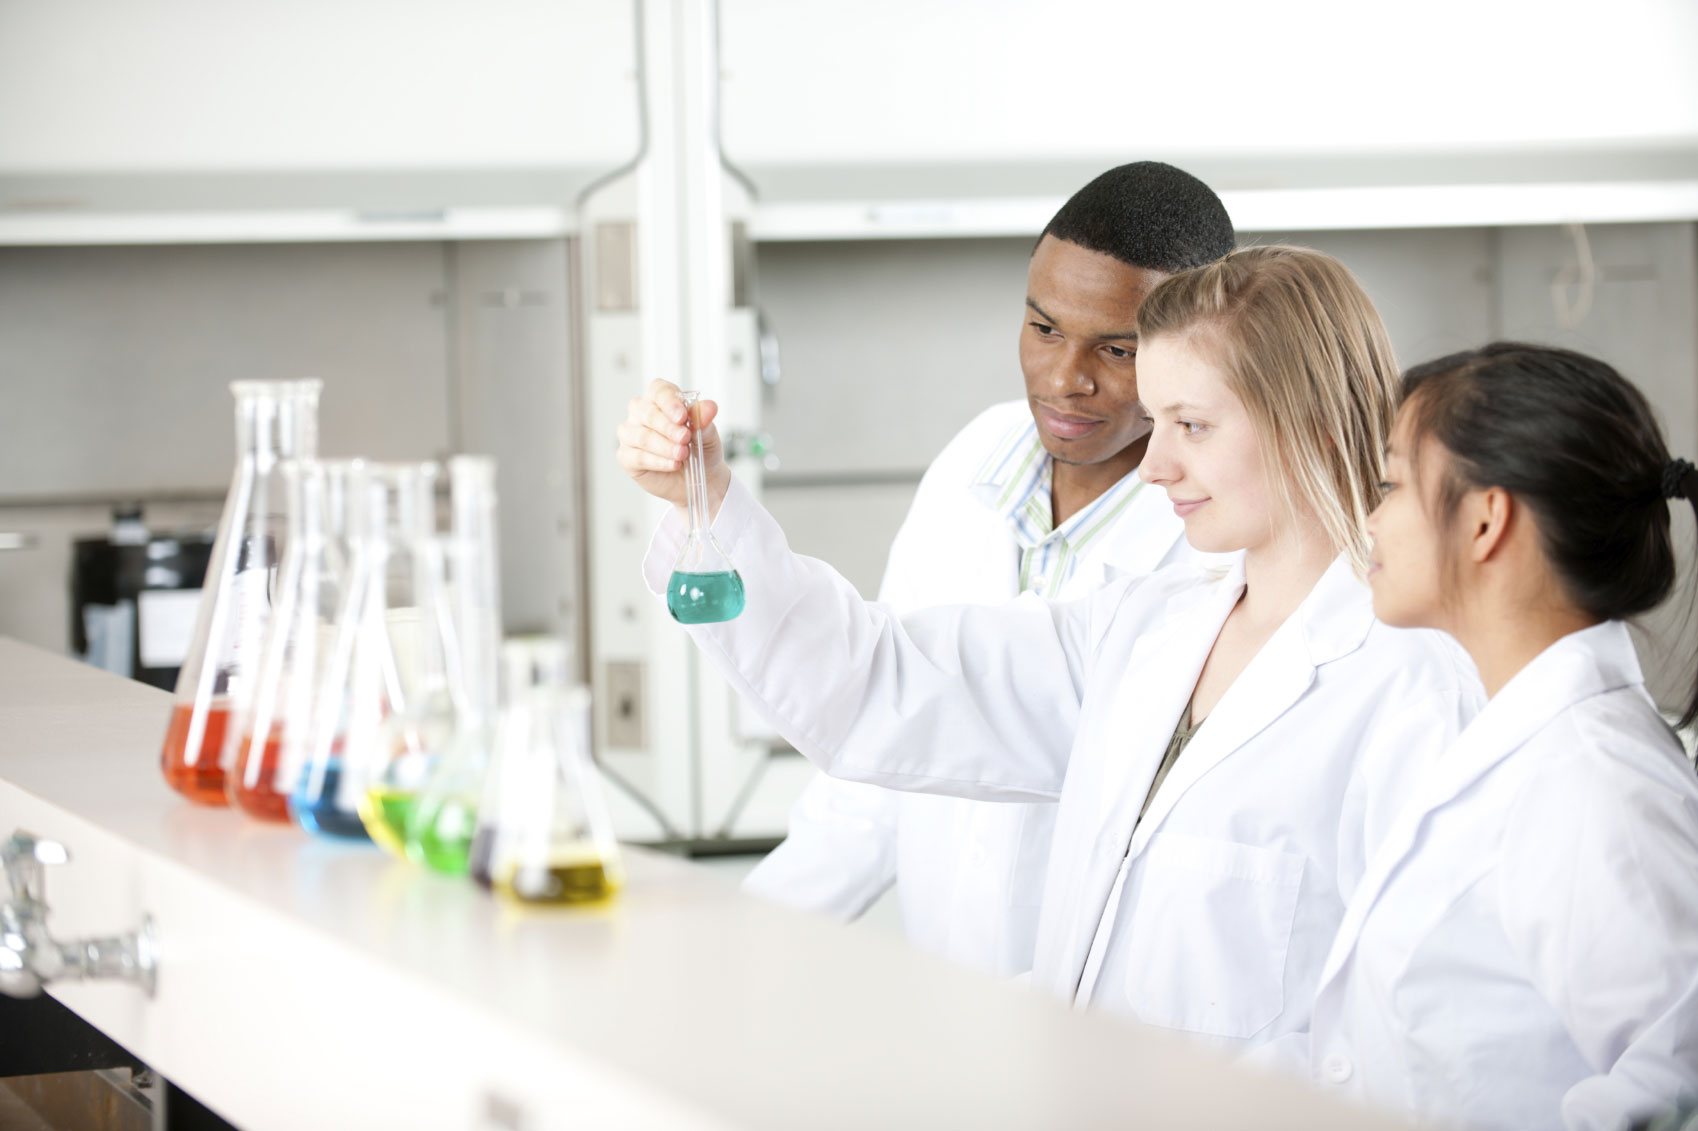 Laboratory scientists